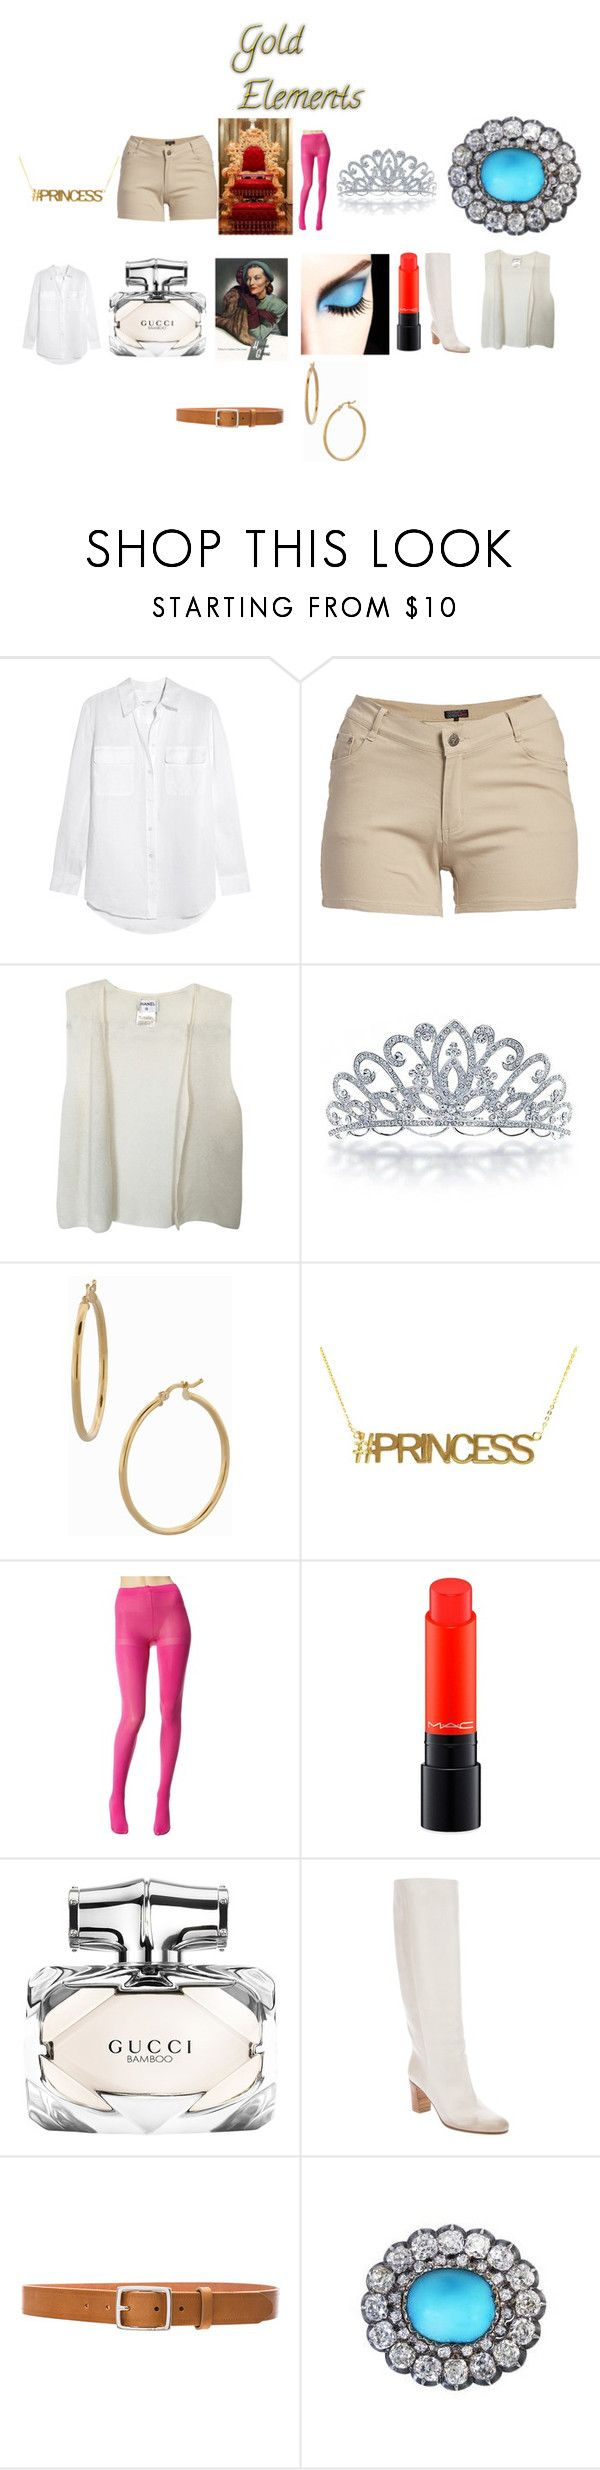 """Lazy, Chill day 15"" by chrisone ❤ liked on Polyvore featuring Equipment, 1826 JEANS, Chanel, Bling Jewelry, Bony Levy, Betsey Johnson, MAC Cosmetics, Gucci, Maison Margiela and rag & bone"